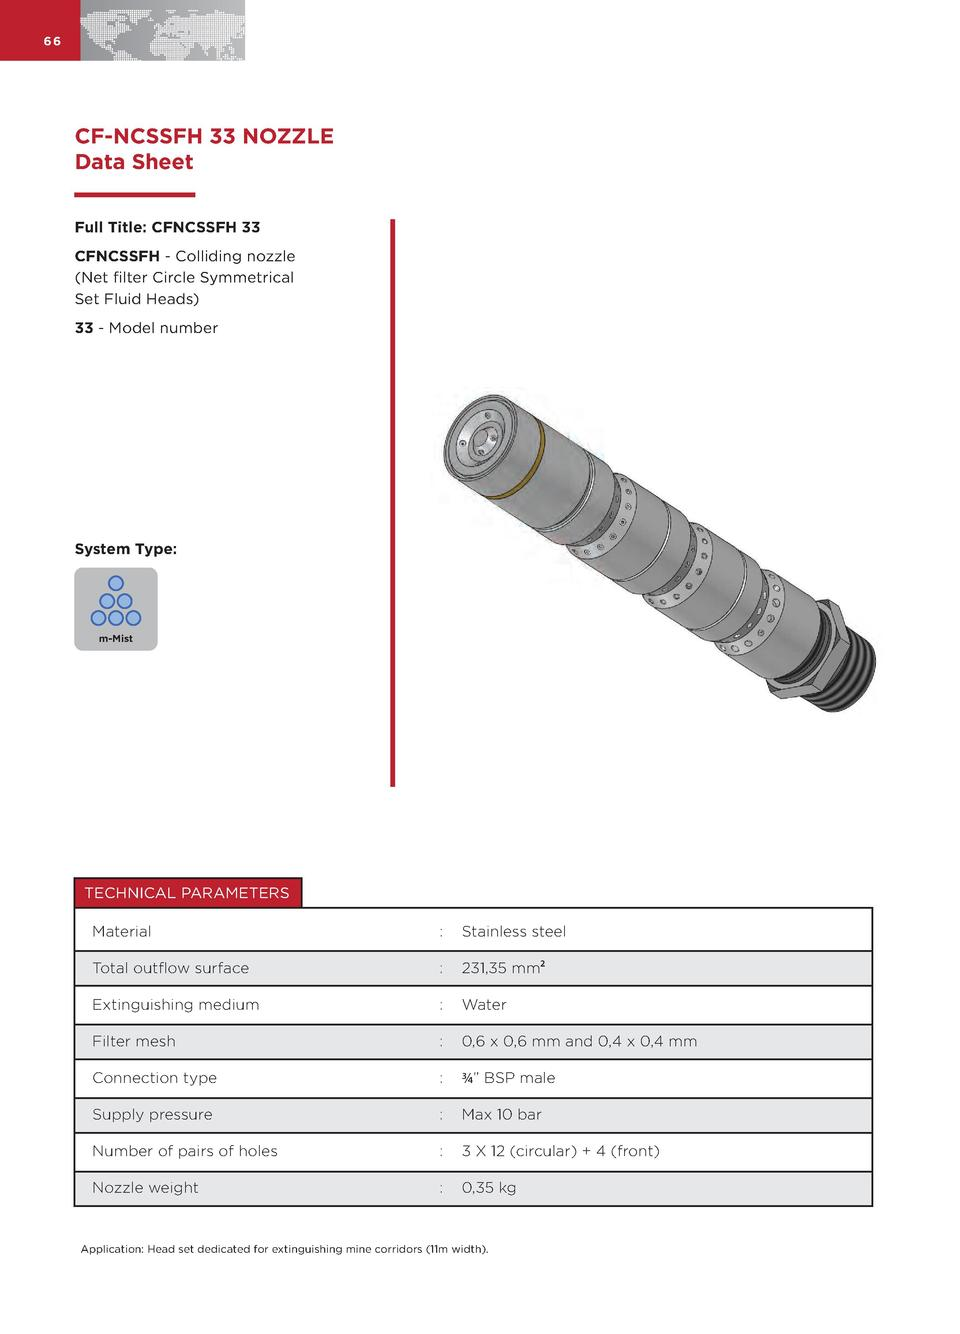 66  CF-NCSSFH 33 NOZZLE Data Sheet Full Title  CFNCSSFH 33 CFNCSSFH - Colliding nozzle  Net filter Circle Symmetrical Set ...